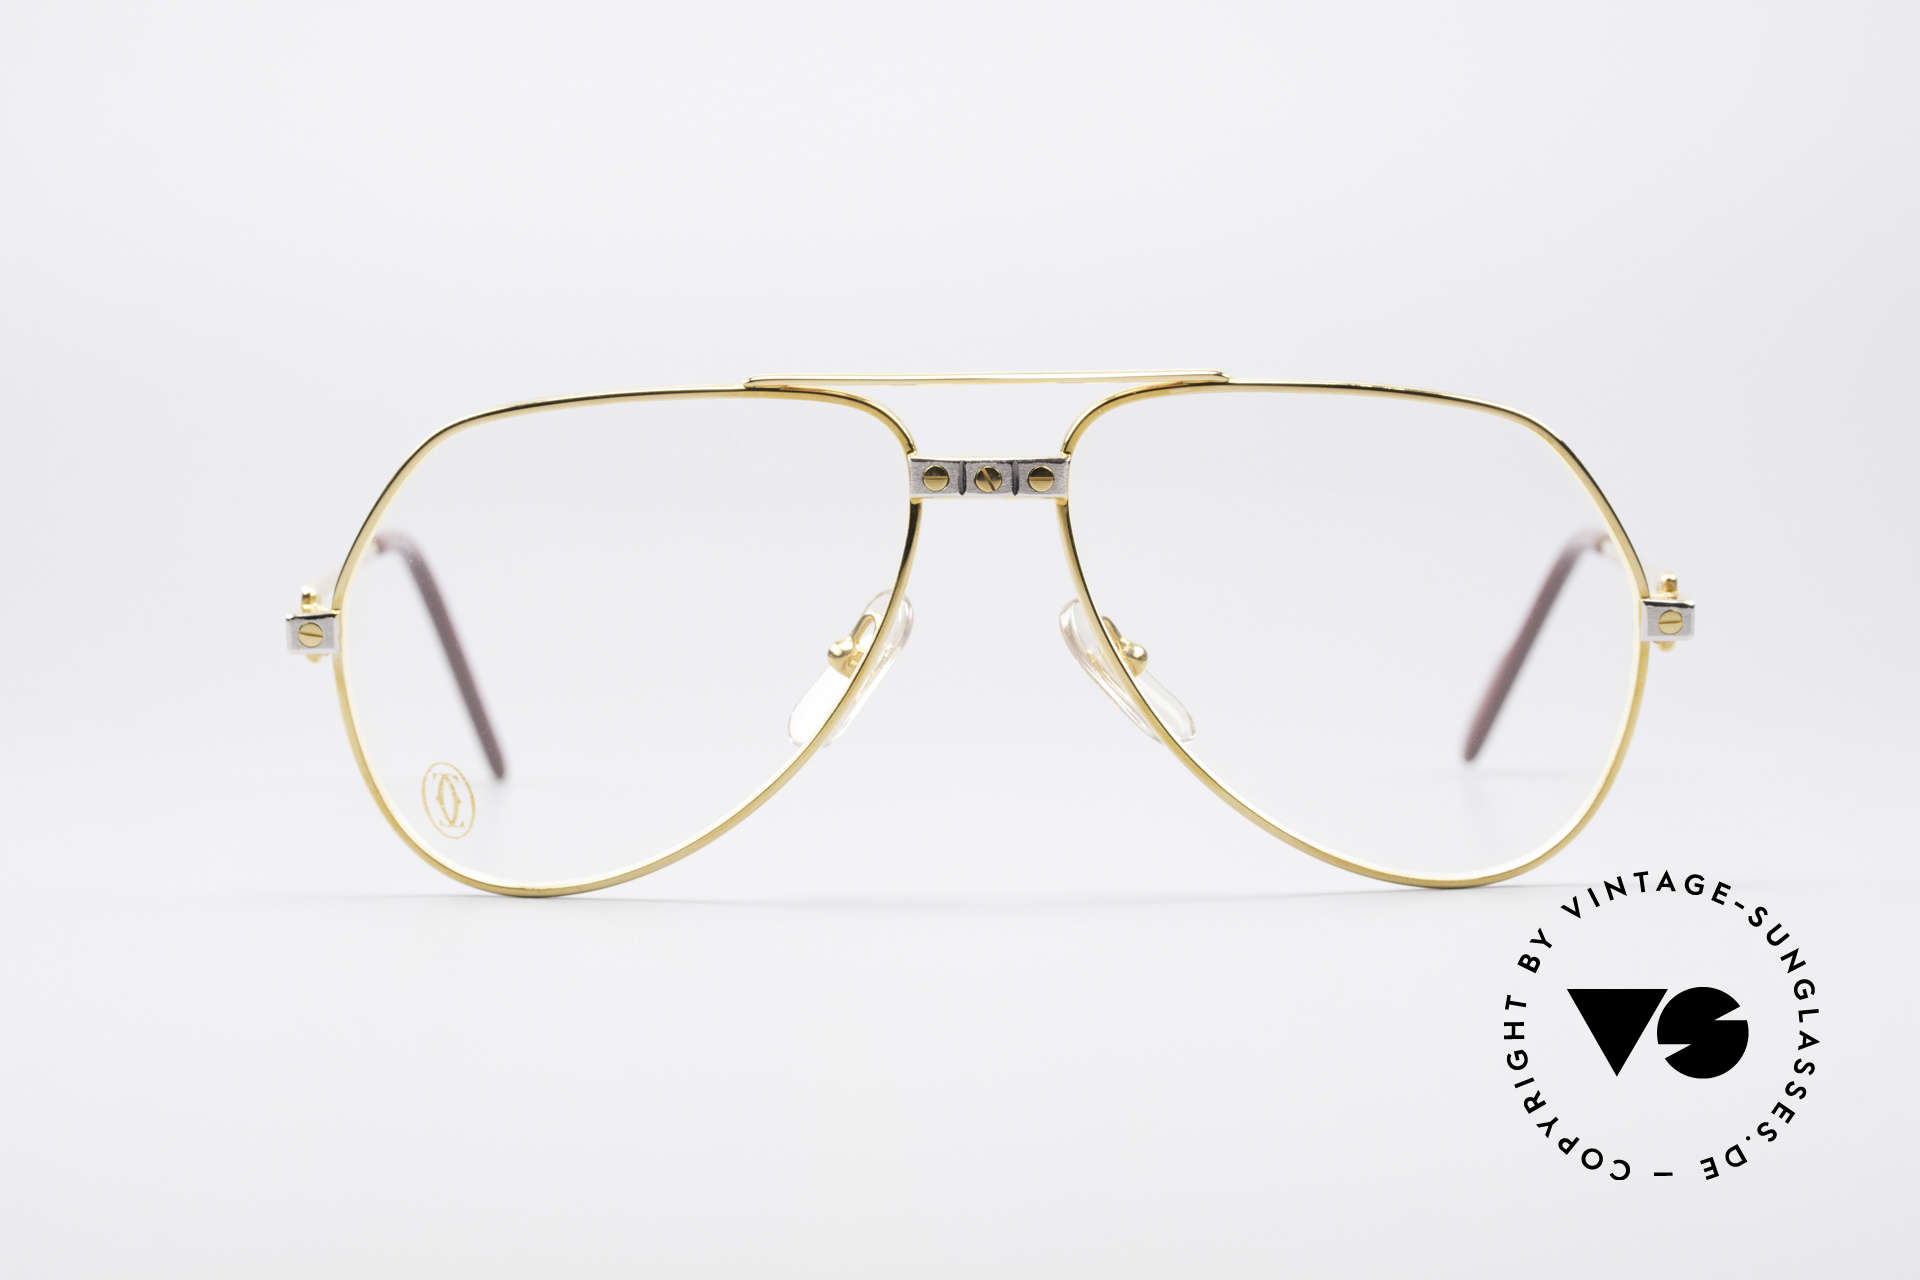 """Cartier Vendome Santos - S James Bond Eyeglasses 1980's, mod. """"Vendome"""" was launched in 1983 & made till 1997, Made for Men and Women"""